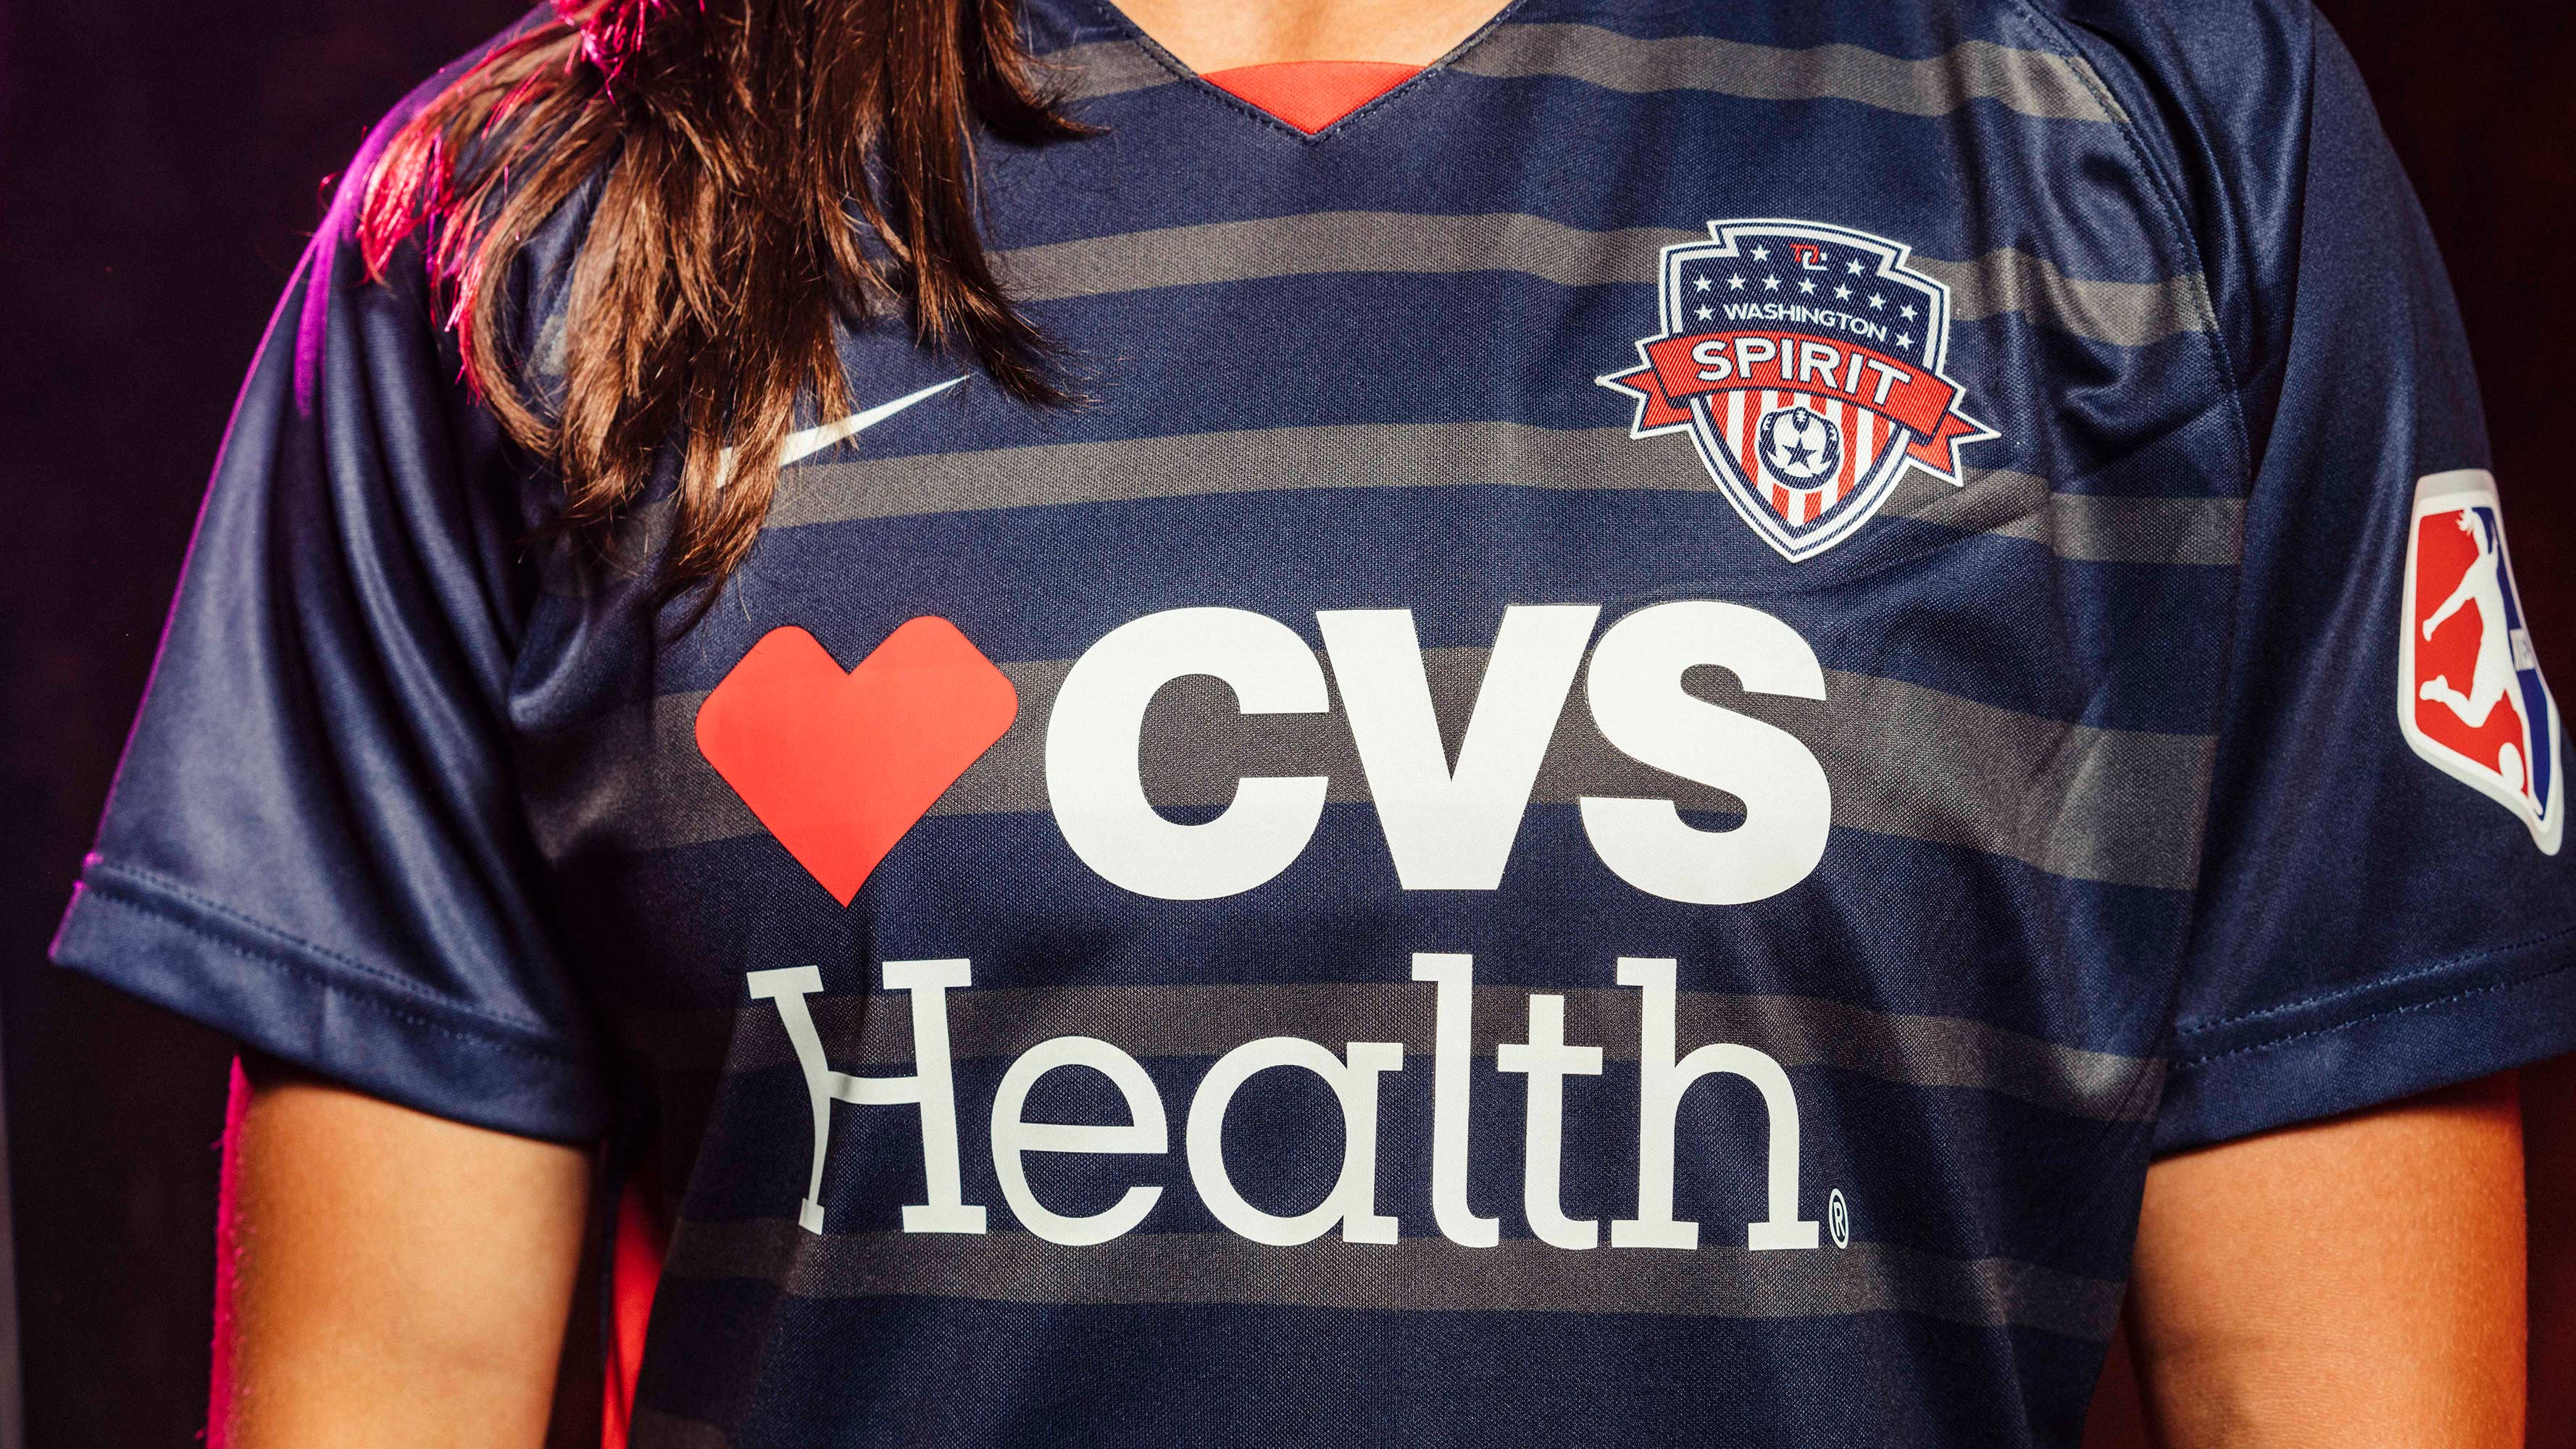 A close up photo of the Washington Spirit (professional soccer team) uniforms, which are dark navy blue and feature CVS Health's logo on the front under the soccer team's branding.